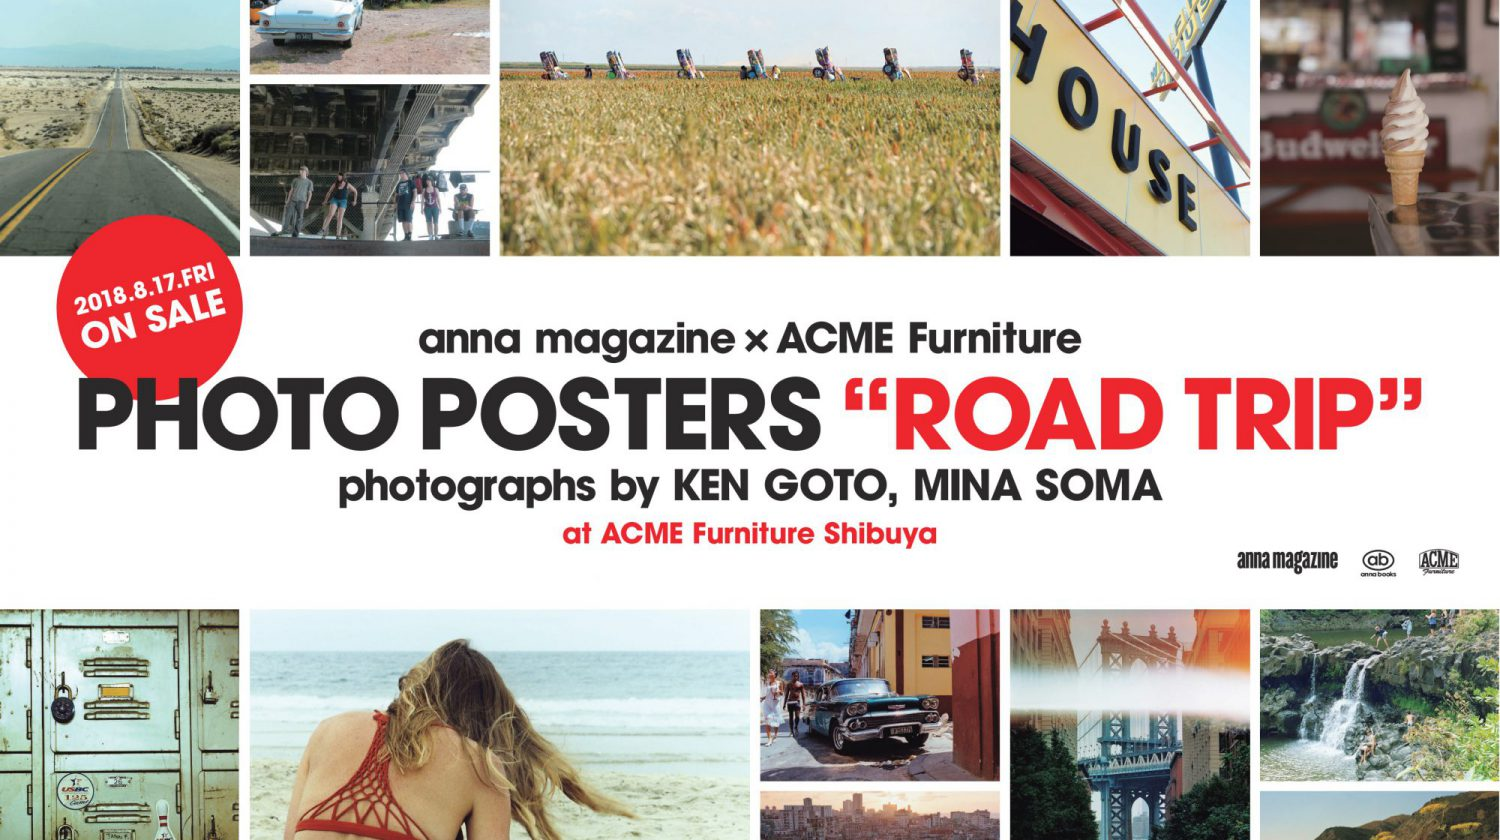 anna magazine × ACME Furniture【PHOTO POSTERS】開催